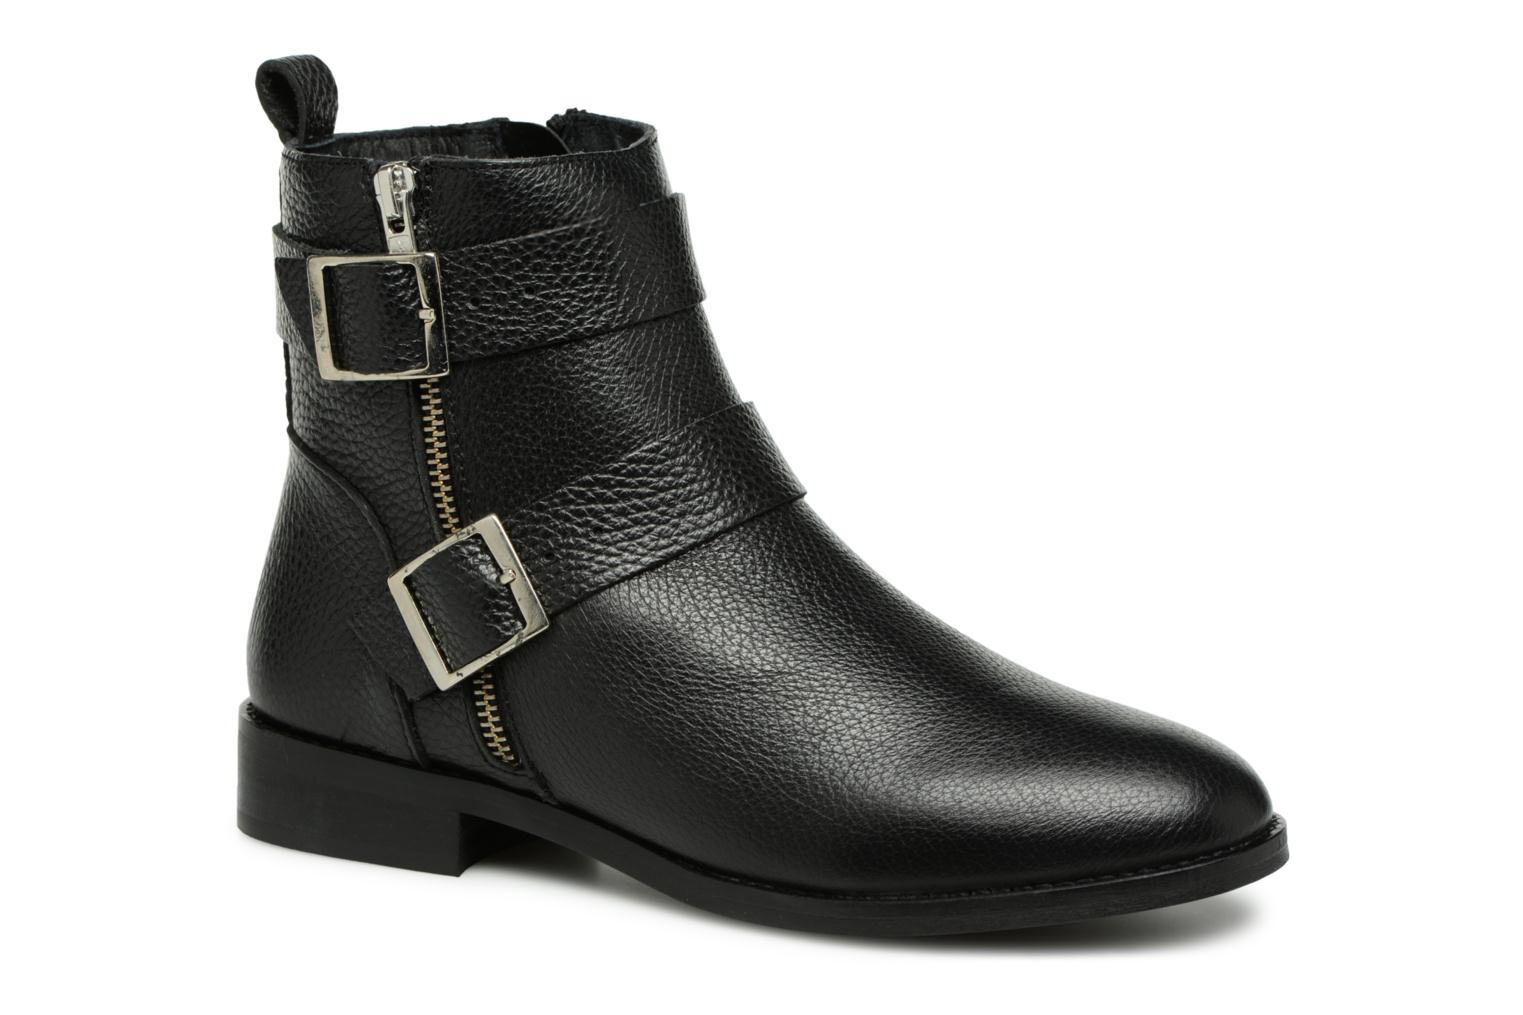 VMSINO LEATHER BOOT par Vero Moda